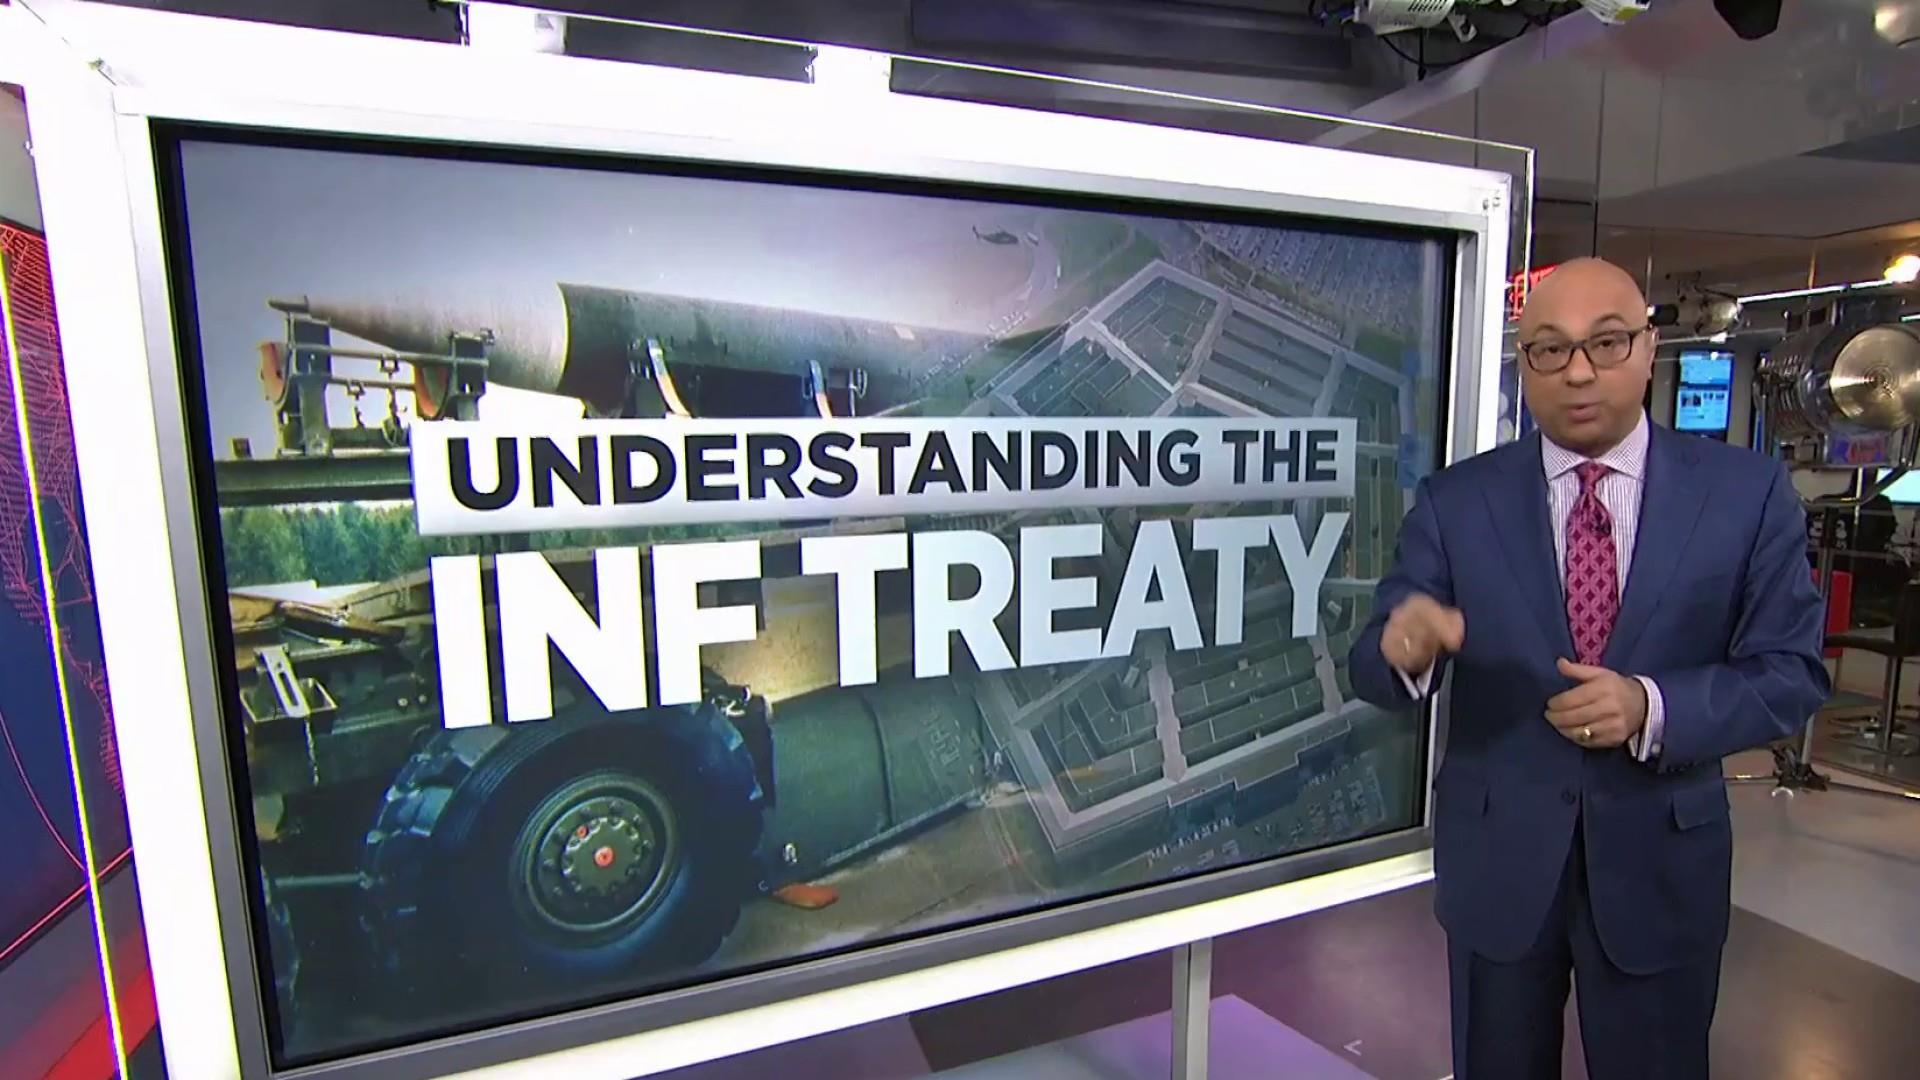 Why does the INF treaty matter?